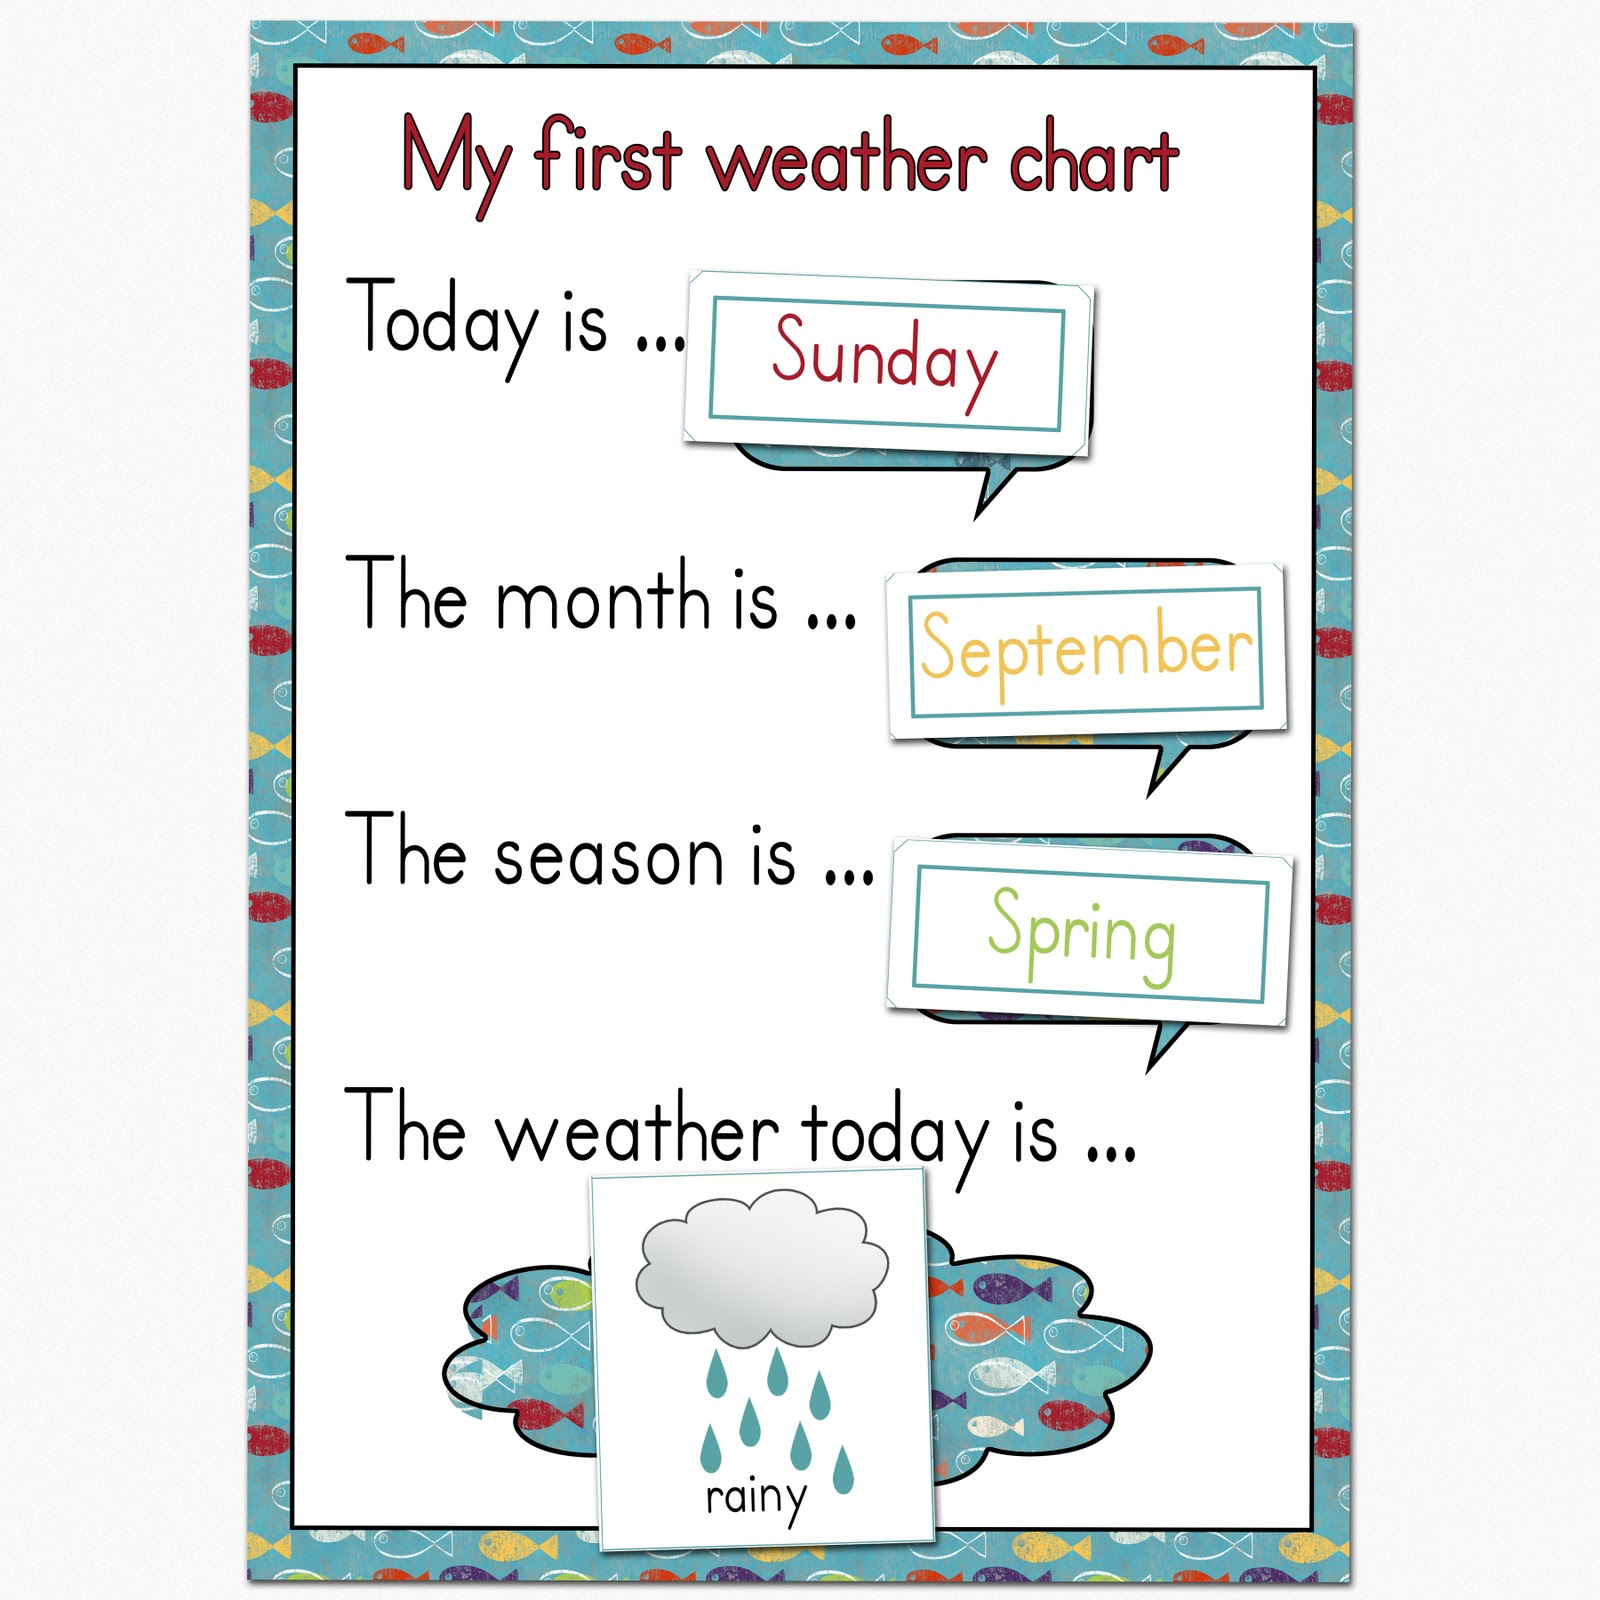 Comprehensive image intended for weather charts printable